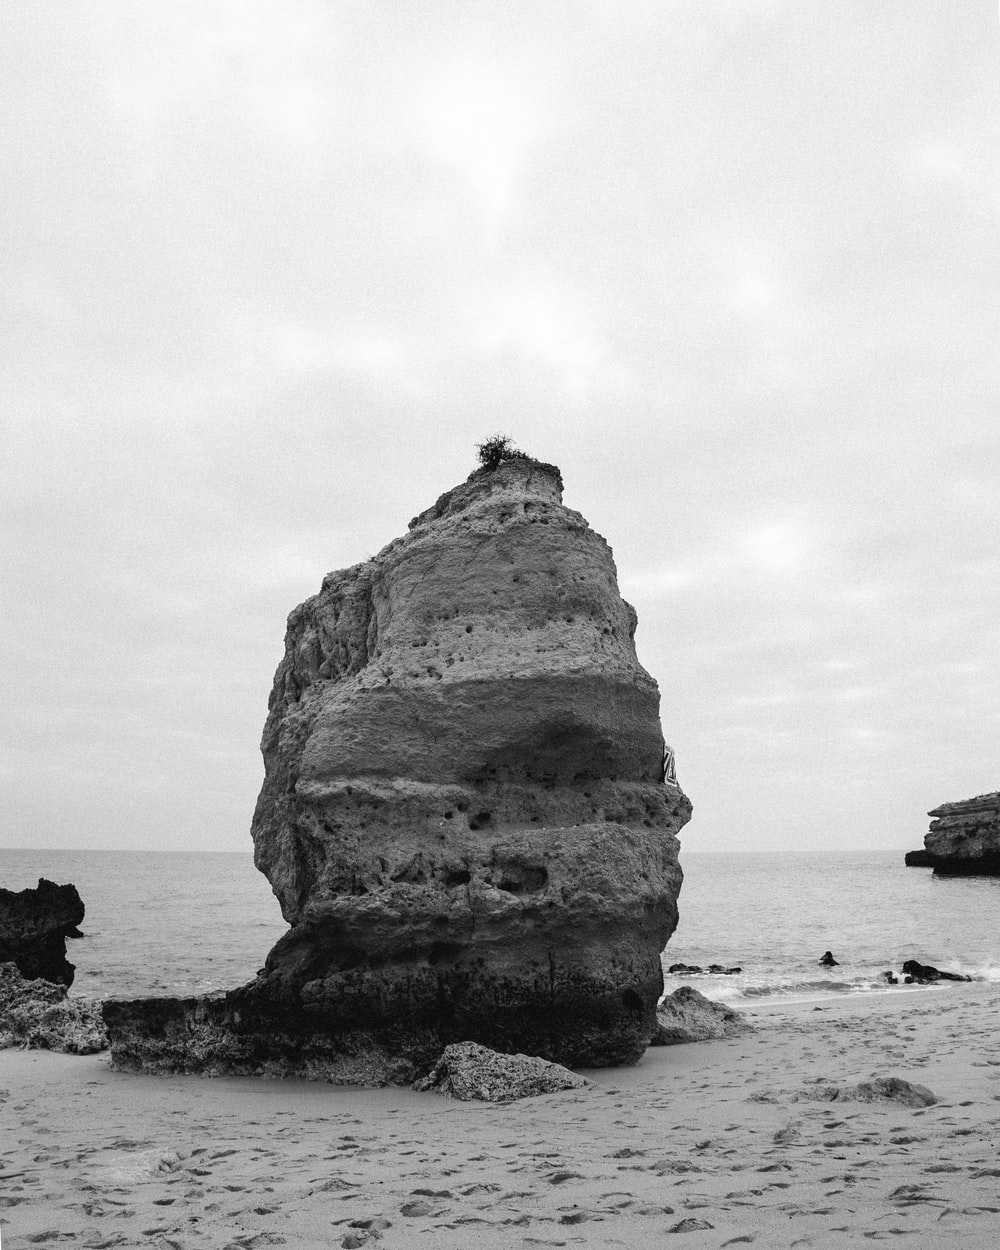 grayscale photo of rock formation on sea shore